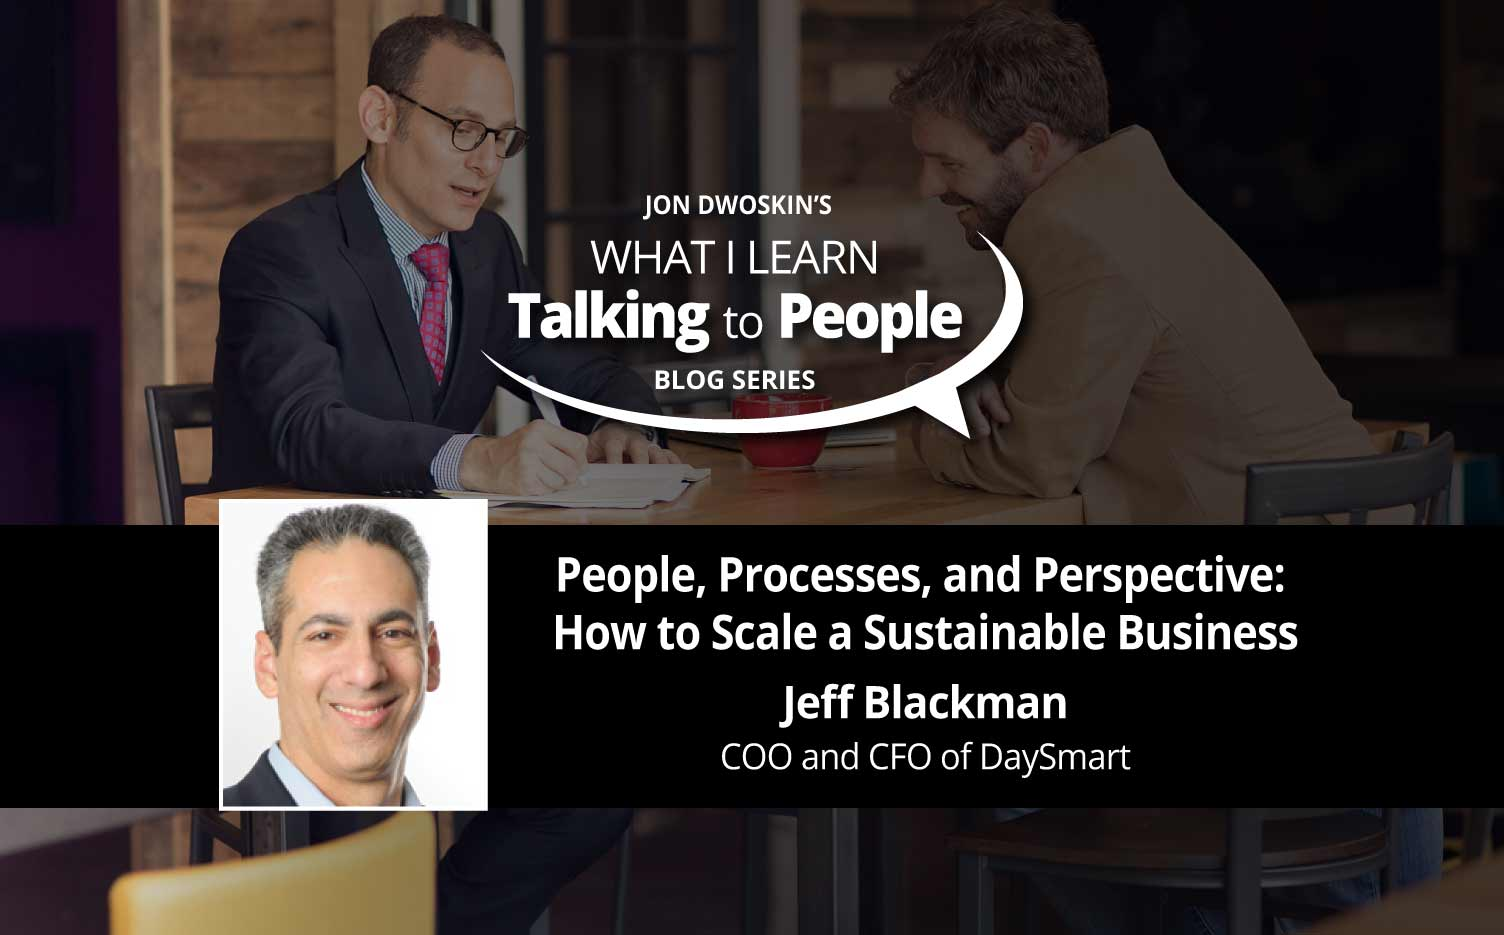 Jon Dwoskin's What I Learn Talking to People Blog: People, Processes, and Perspective: How to Scale a Sustainable Business - featuring Jeff Blackman